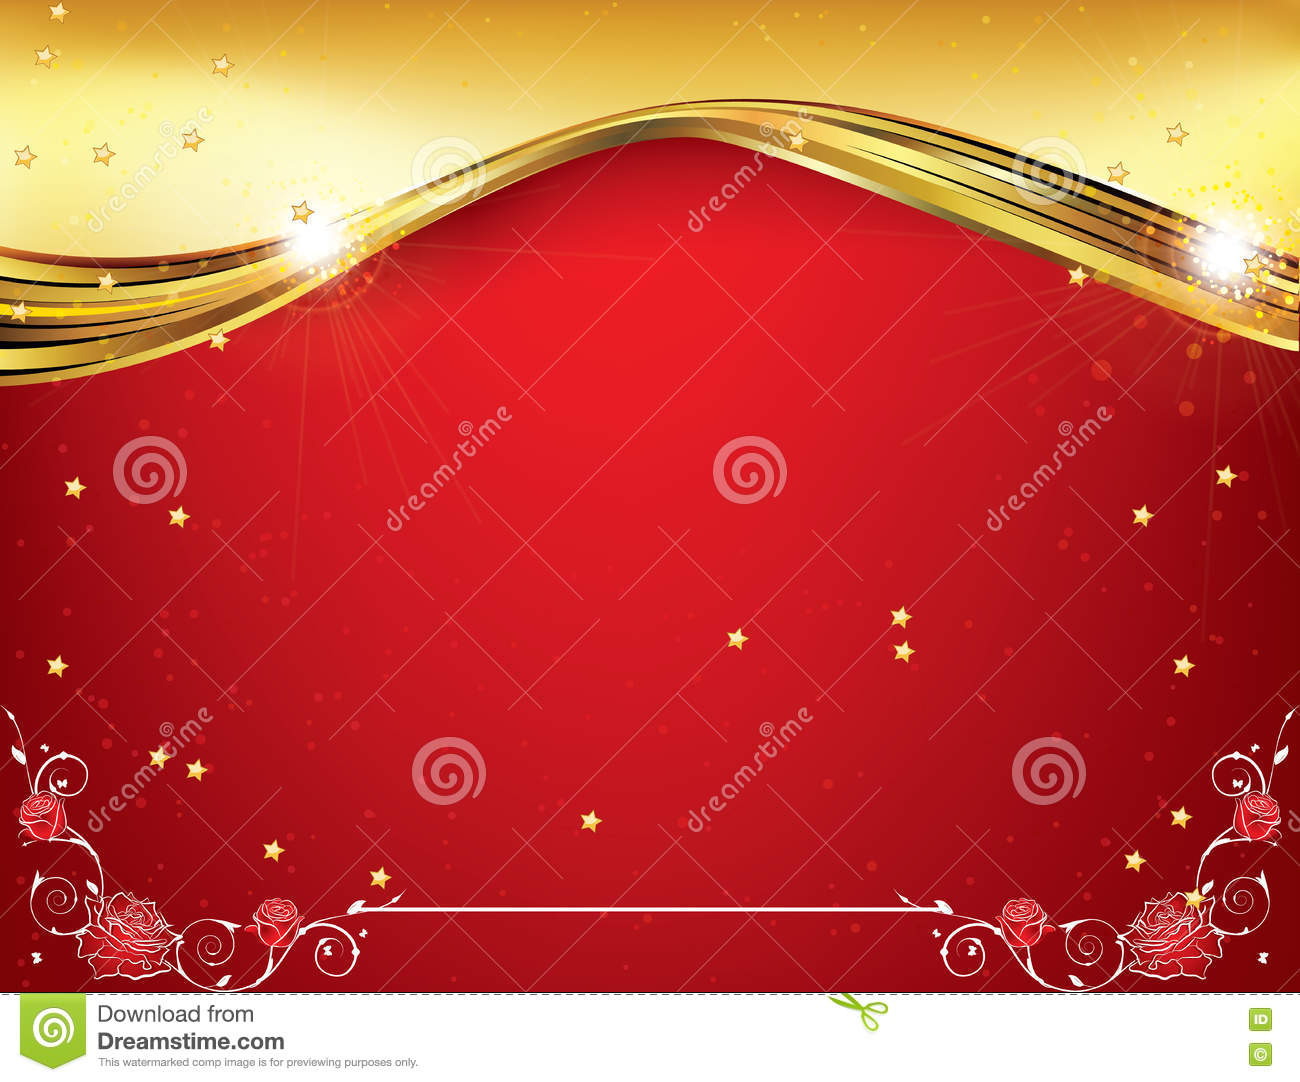 Red Celebration Background For Any Occasion Winter Holidays Wedding Invitations Post Cards Print Colors Used Greeting Card Custom Size